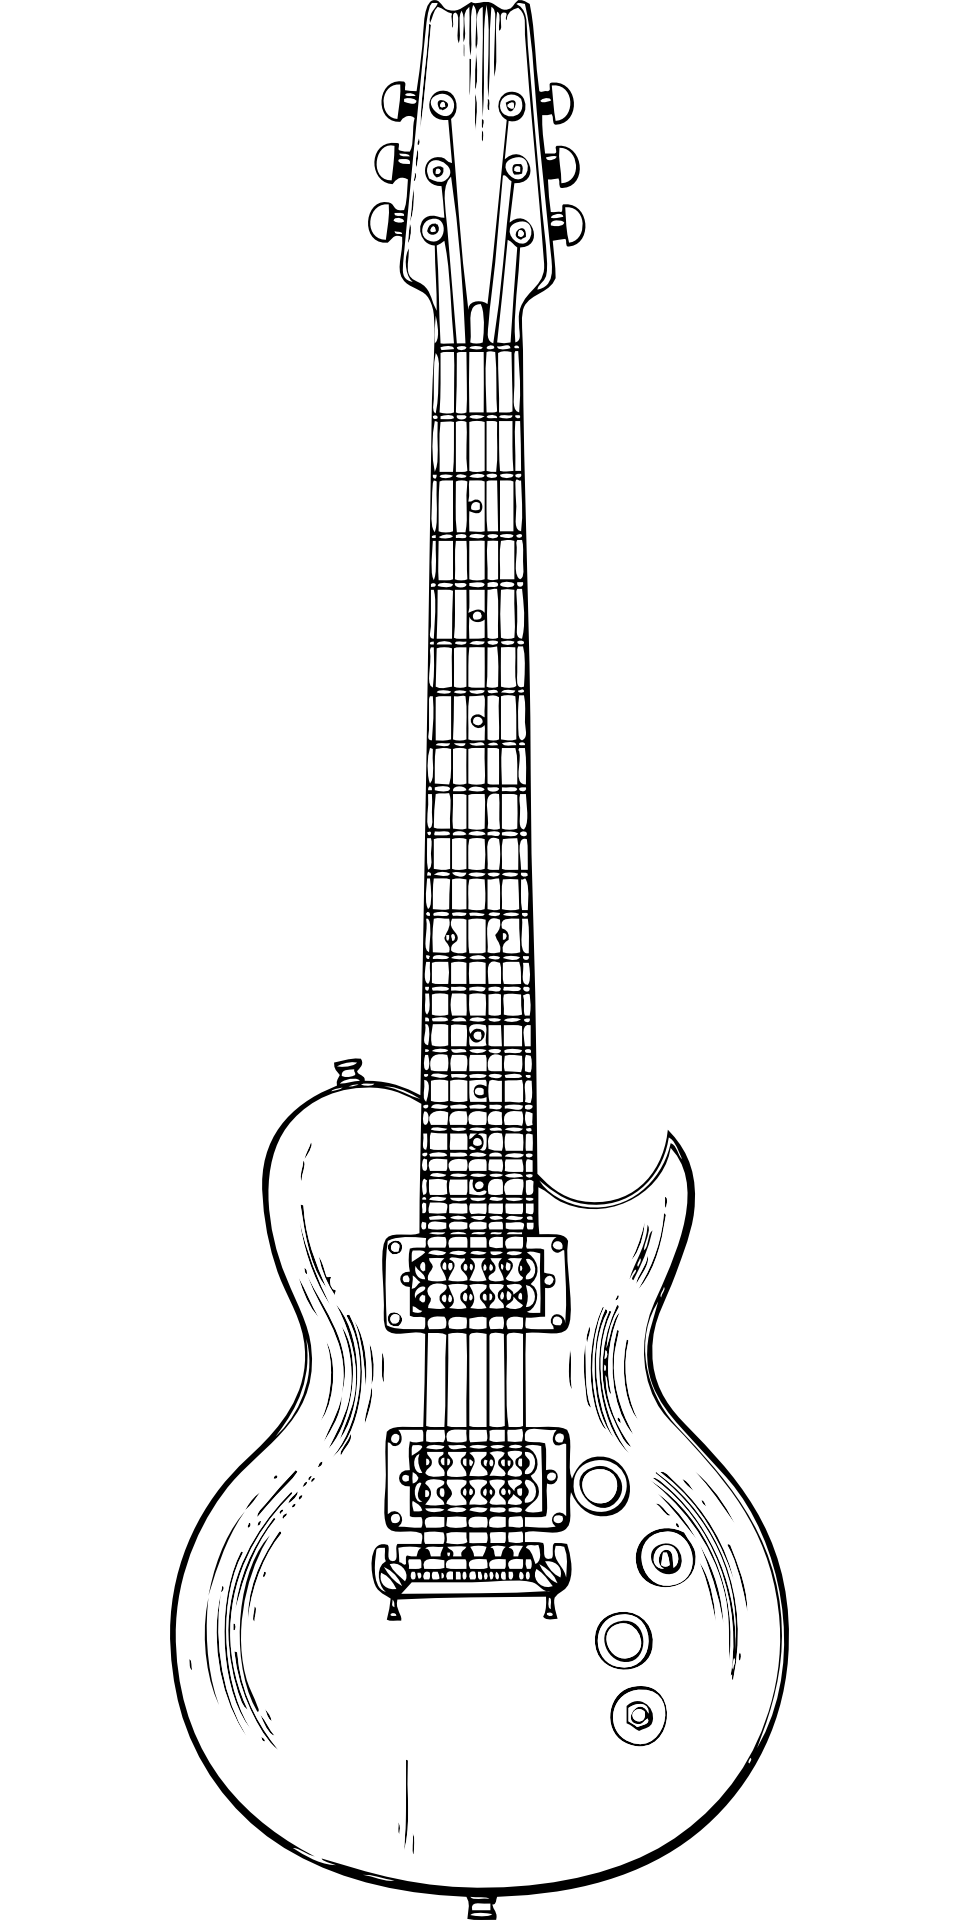 Drawing guitar eletric. Electric musical instrument music